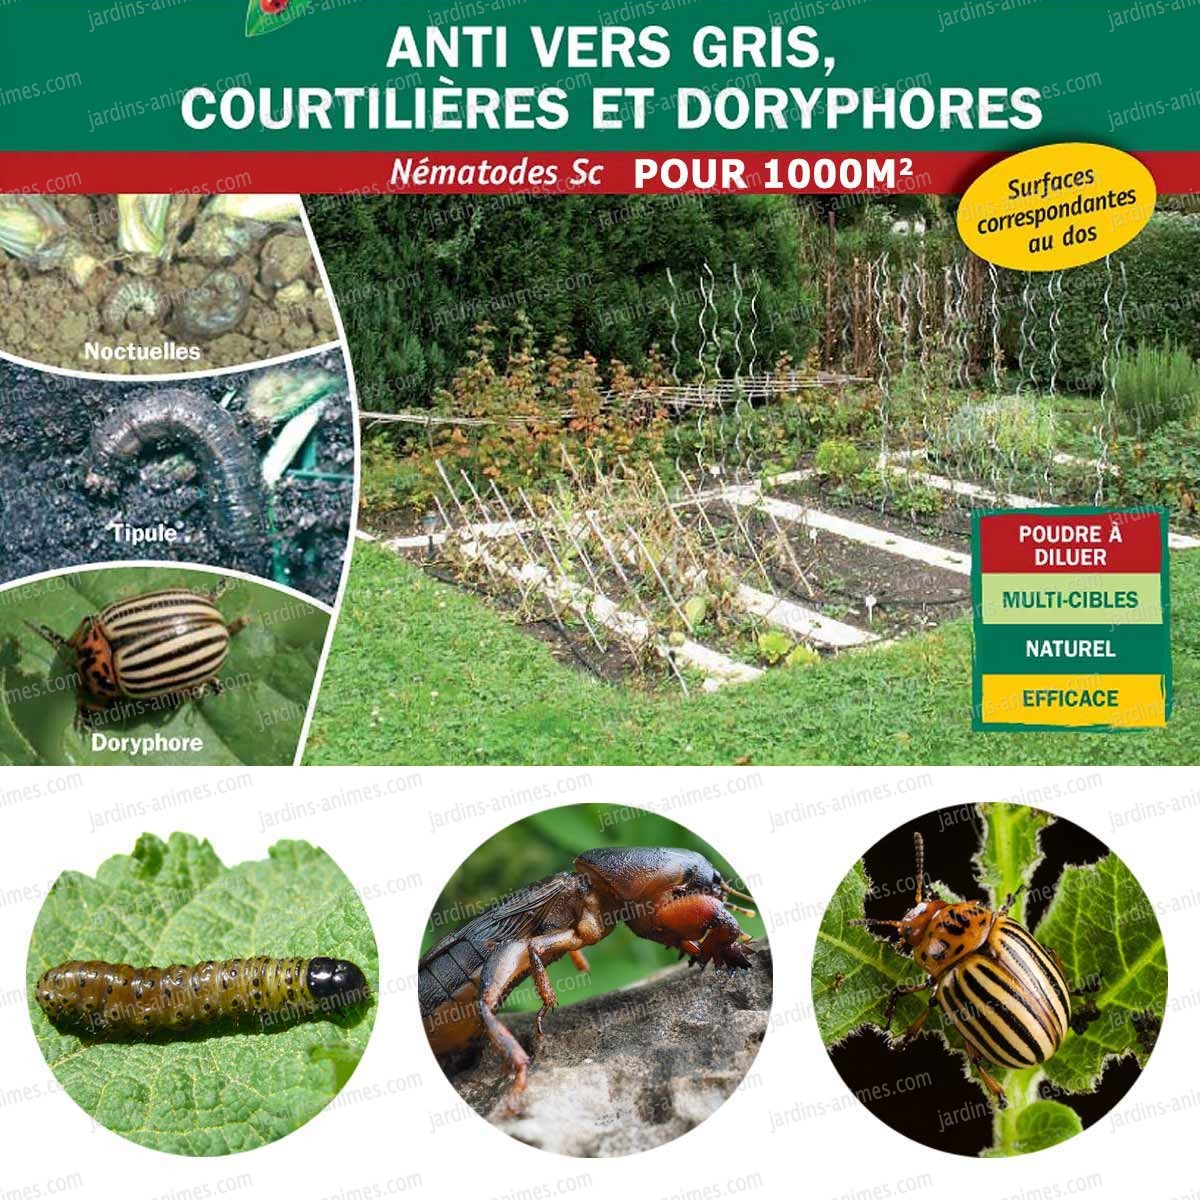 nematodes 500millions anti vers gris courtili res